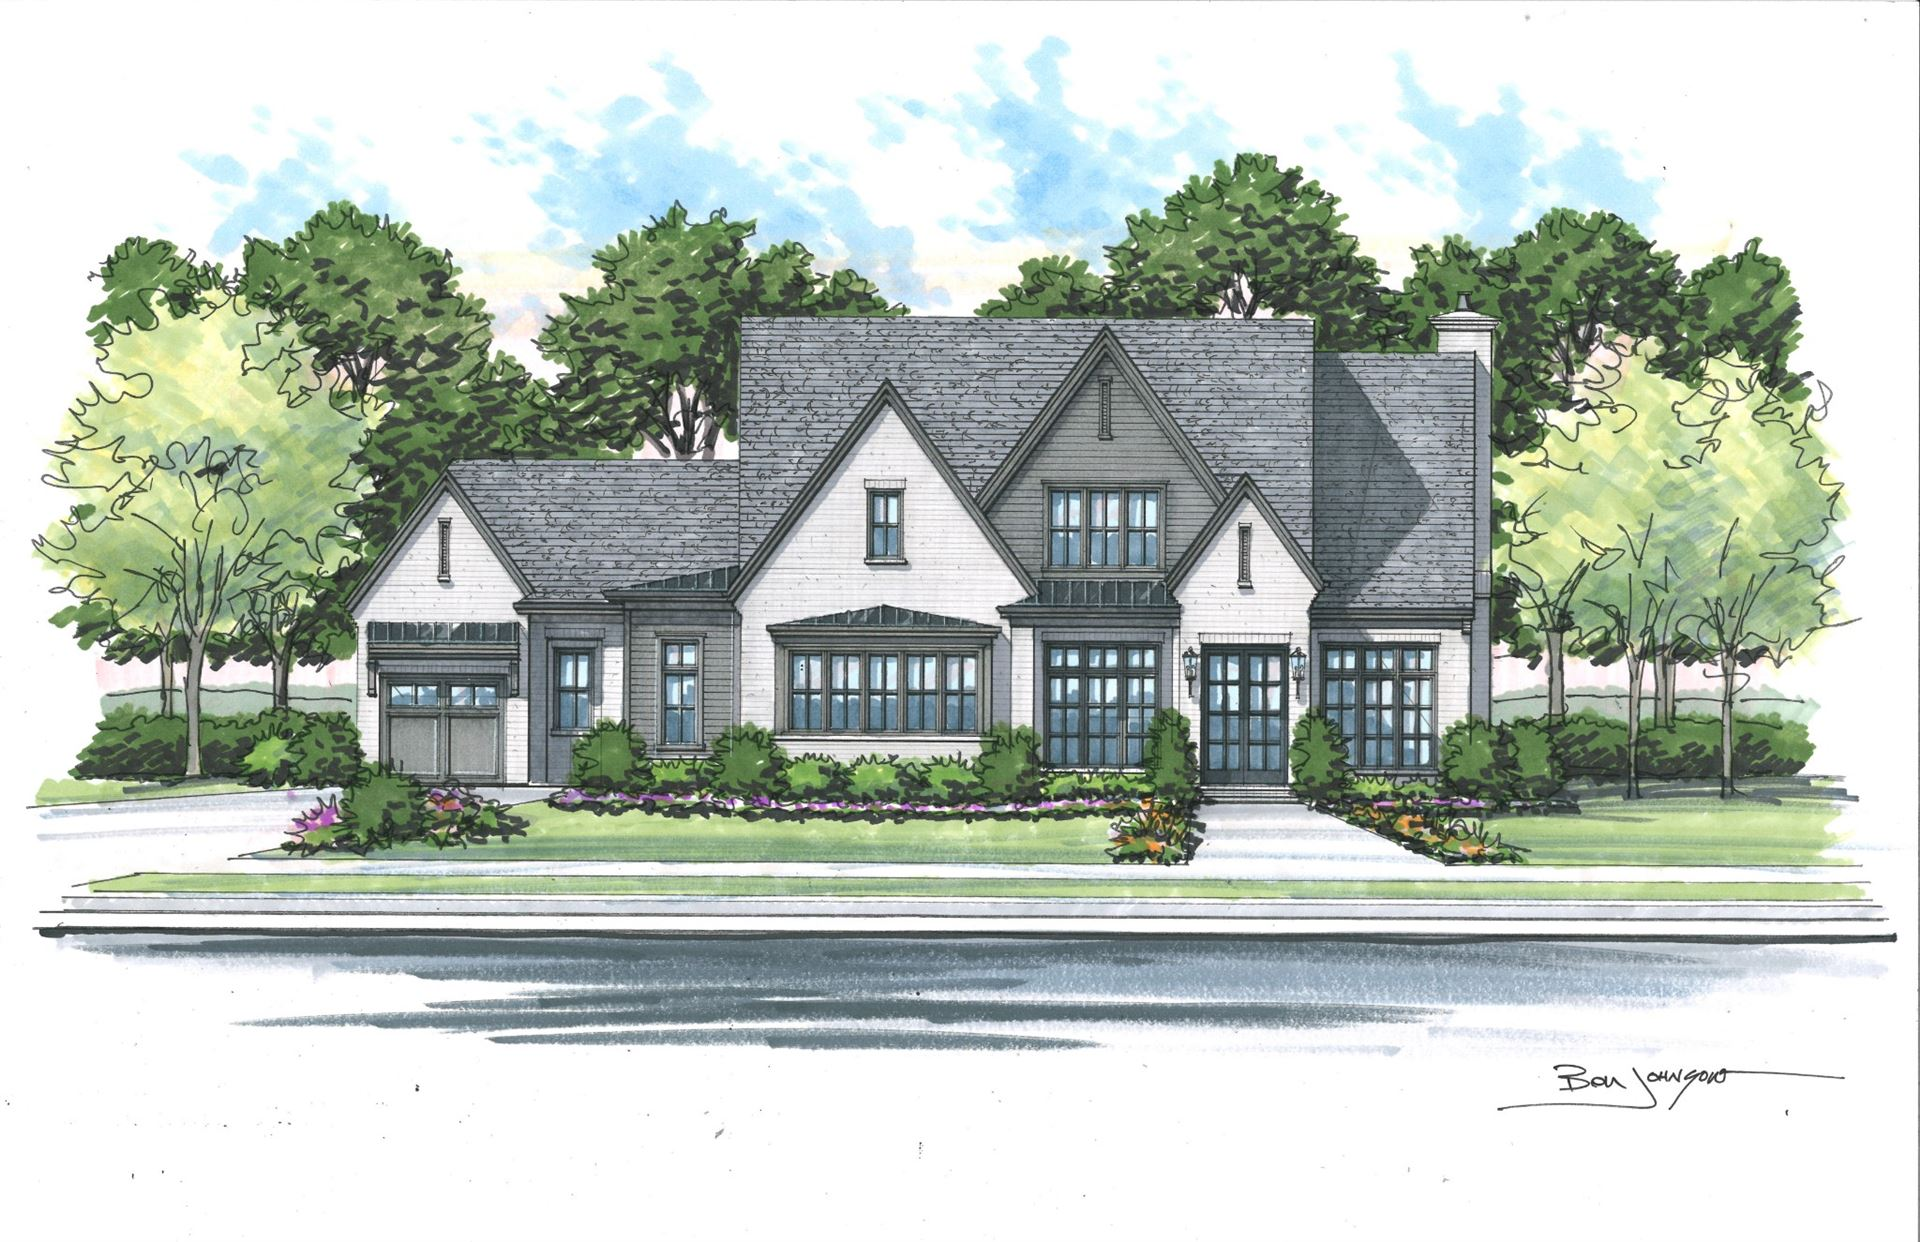 9213 Lehigh Dr (Lot #92), Brentwood, TN 37027 - MLS#: 2226785